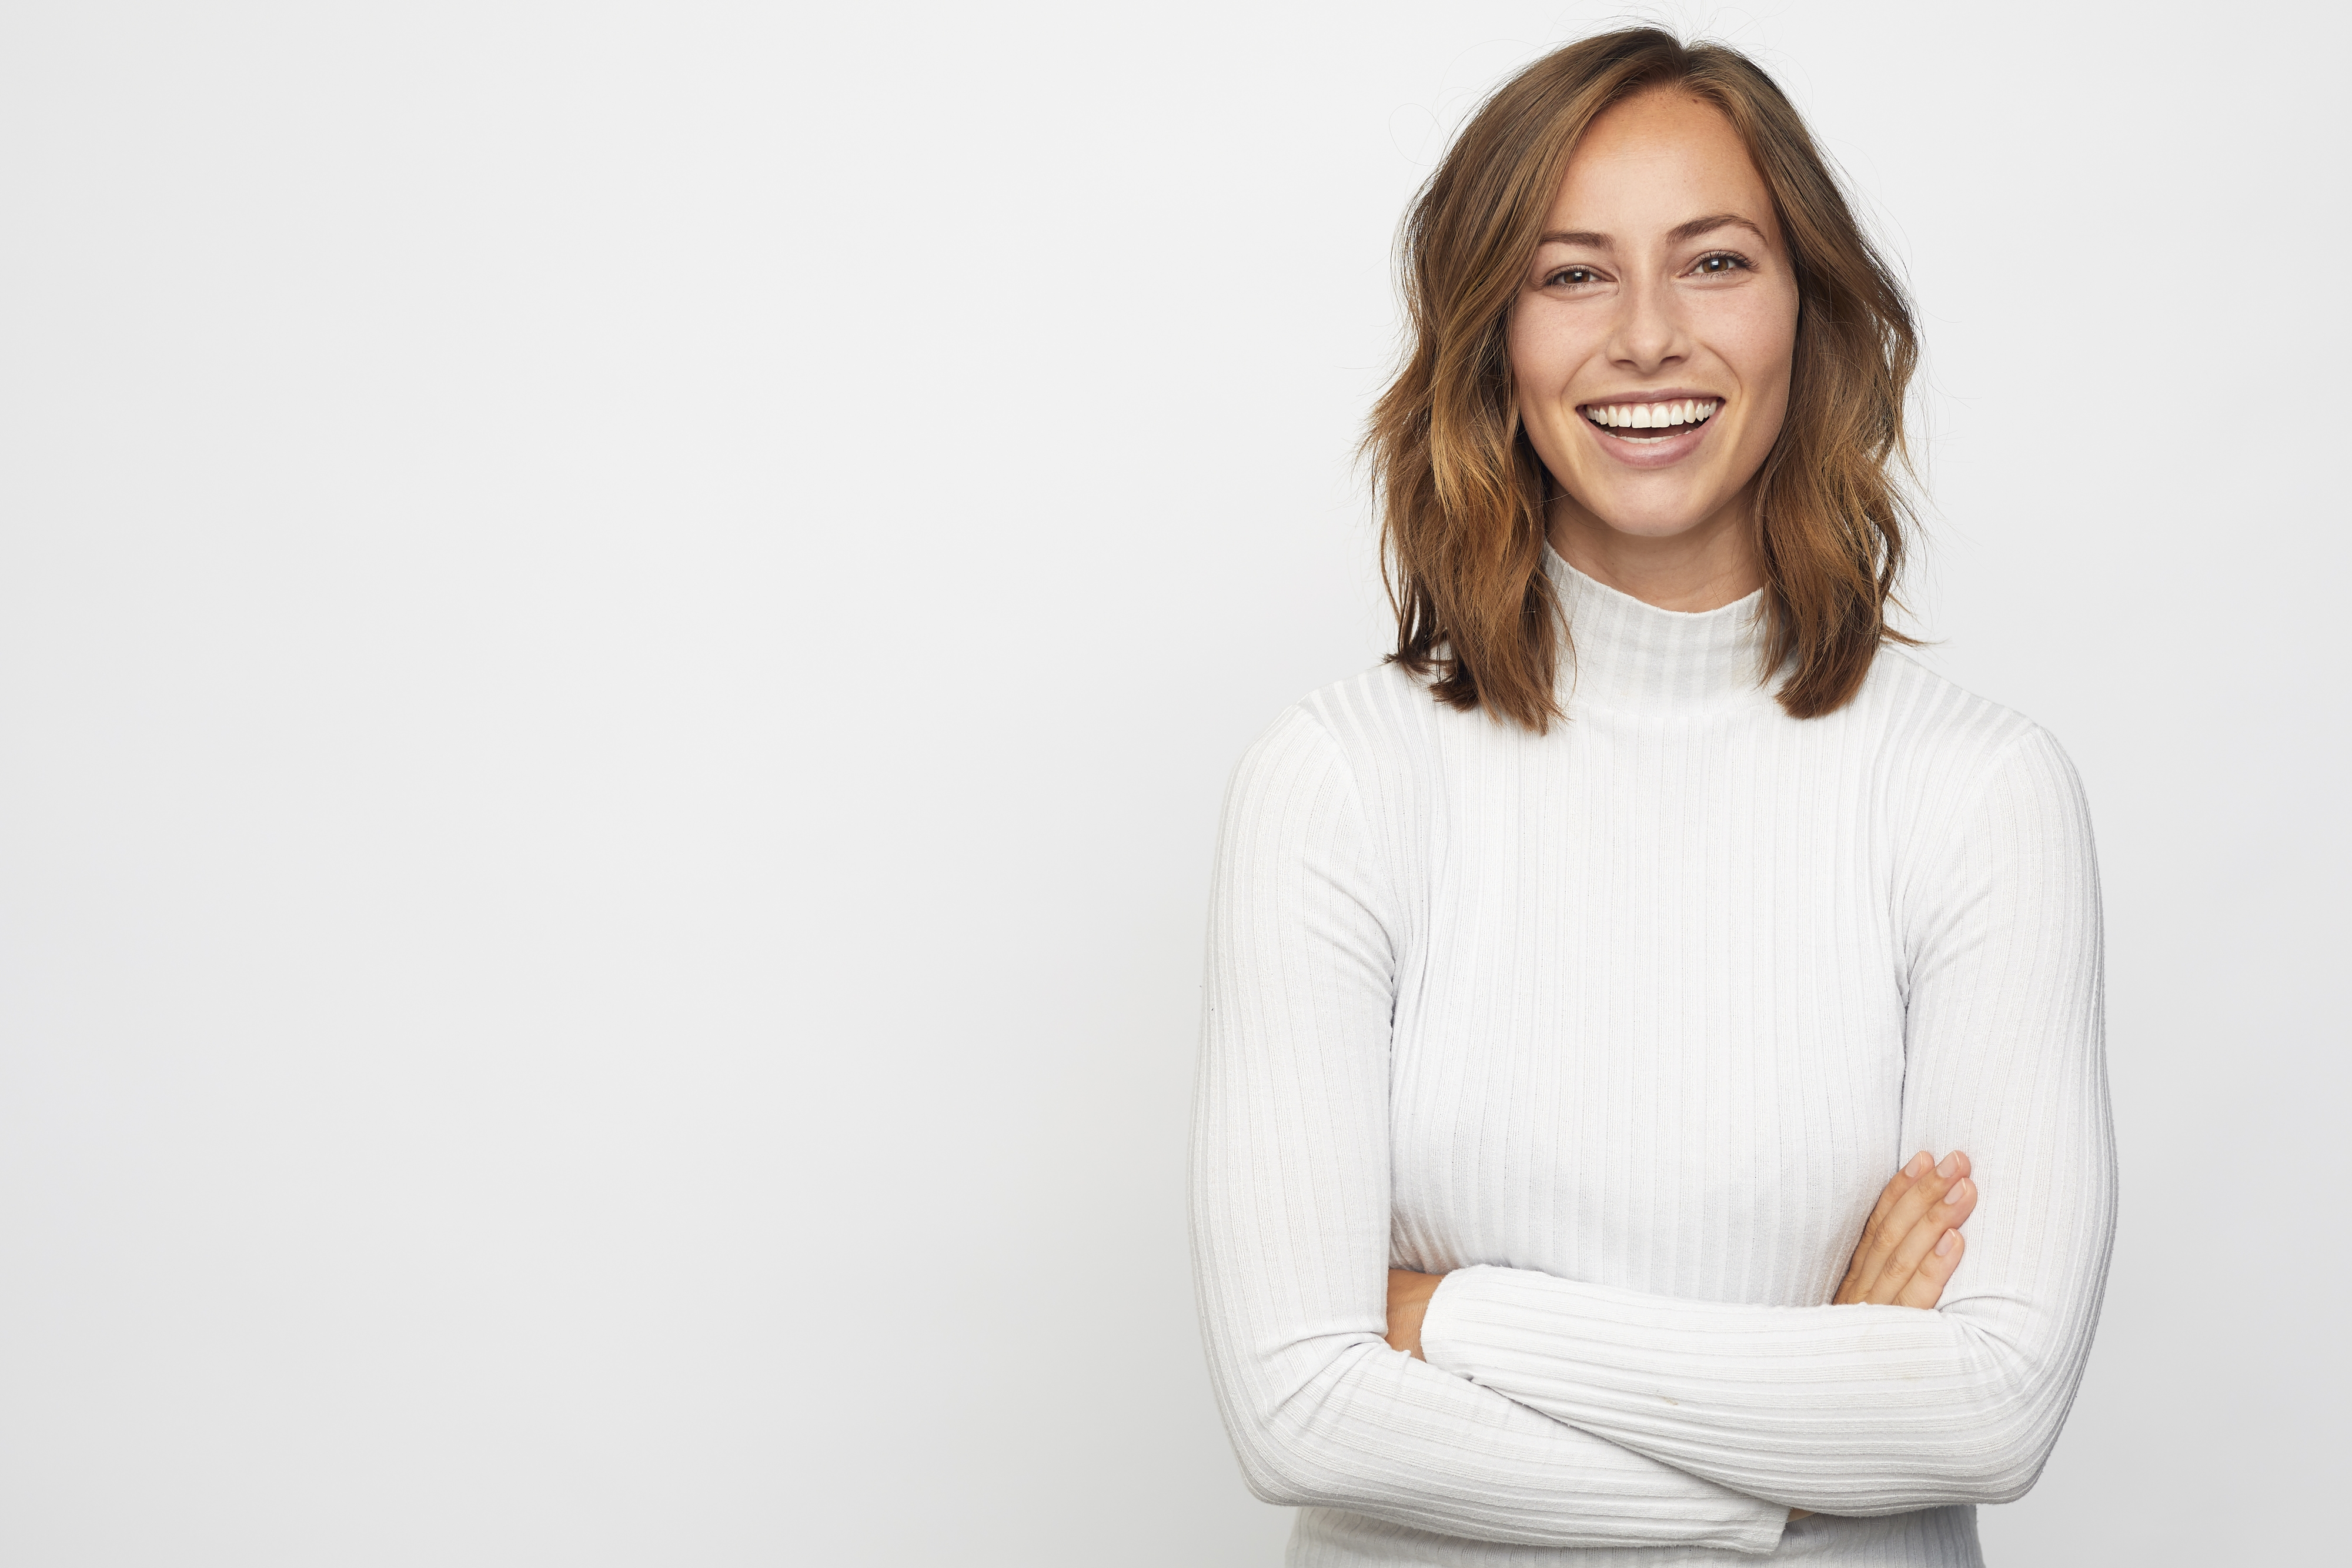 Smiling woman in a white sweater